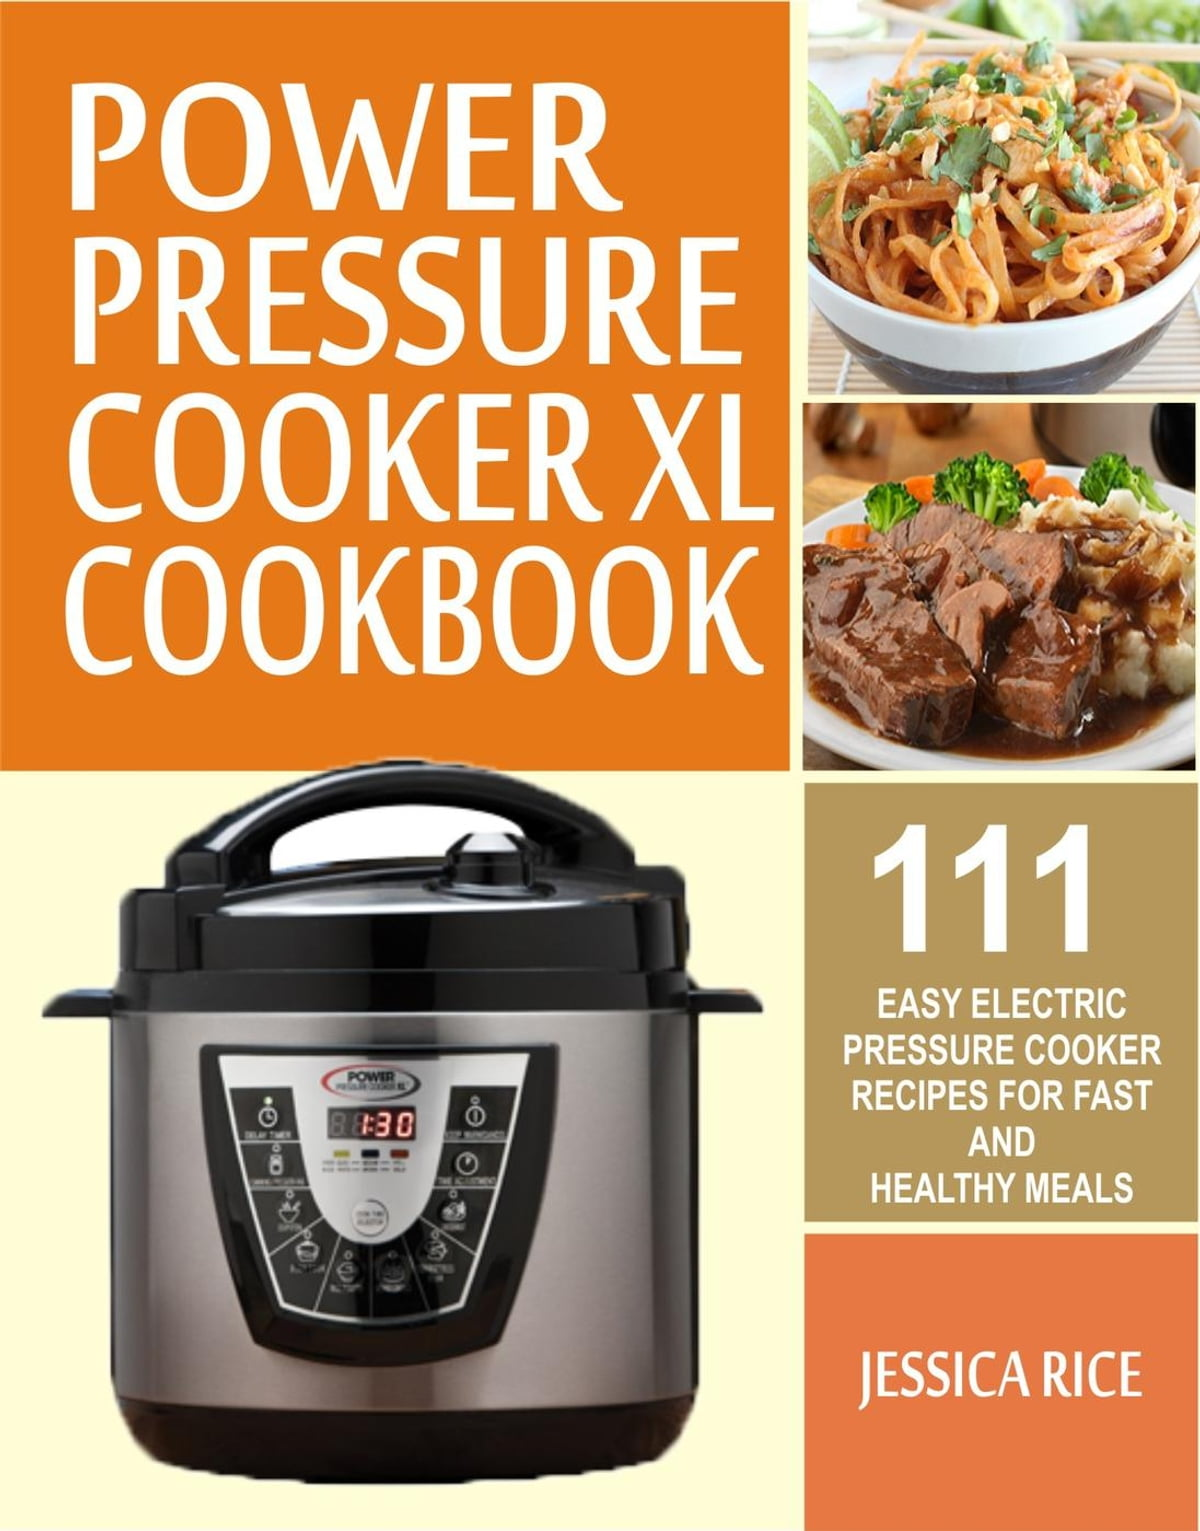 Power Pressure Cooker XL Cookbook: 111 Easy Electric Pressure Cooker Recipes  For Fast And Healthy Meals eBook by Jessica Rice - 9781386709558 | Rakuten  Kobo